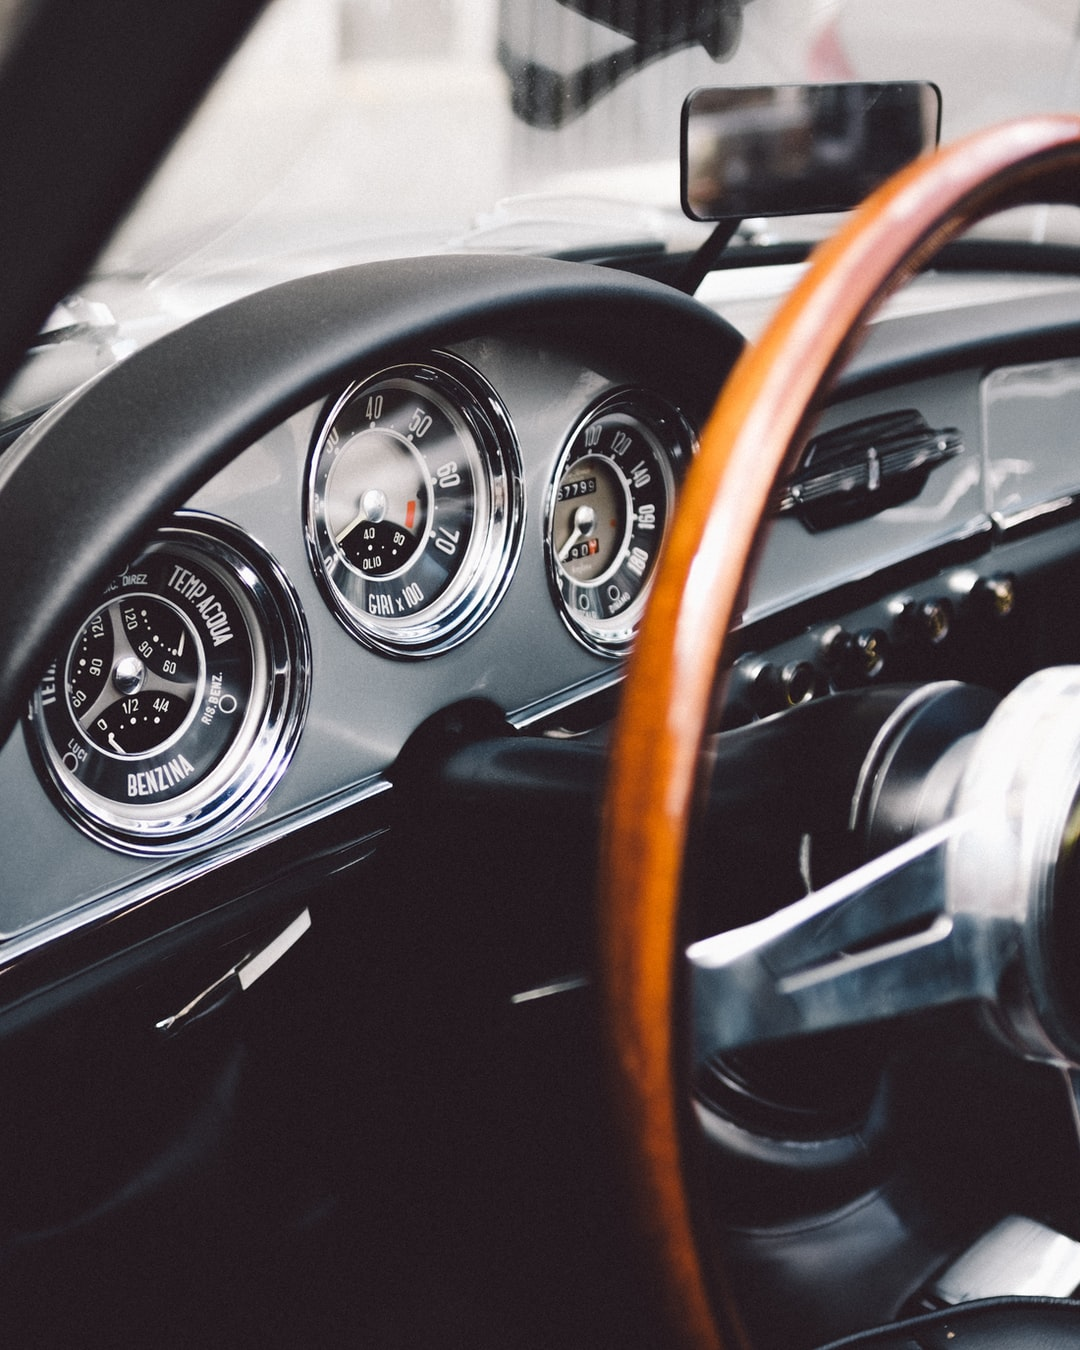 Volkswagen Beetle Retro 4k Hd Wallpaper: Download Free Images On Unsplash